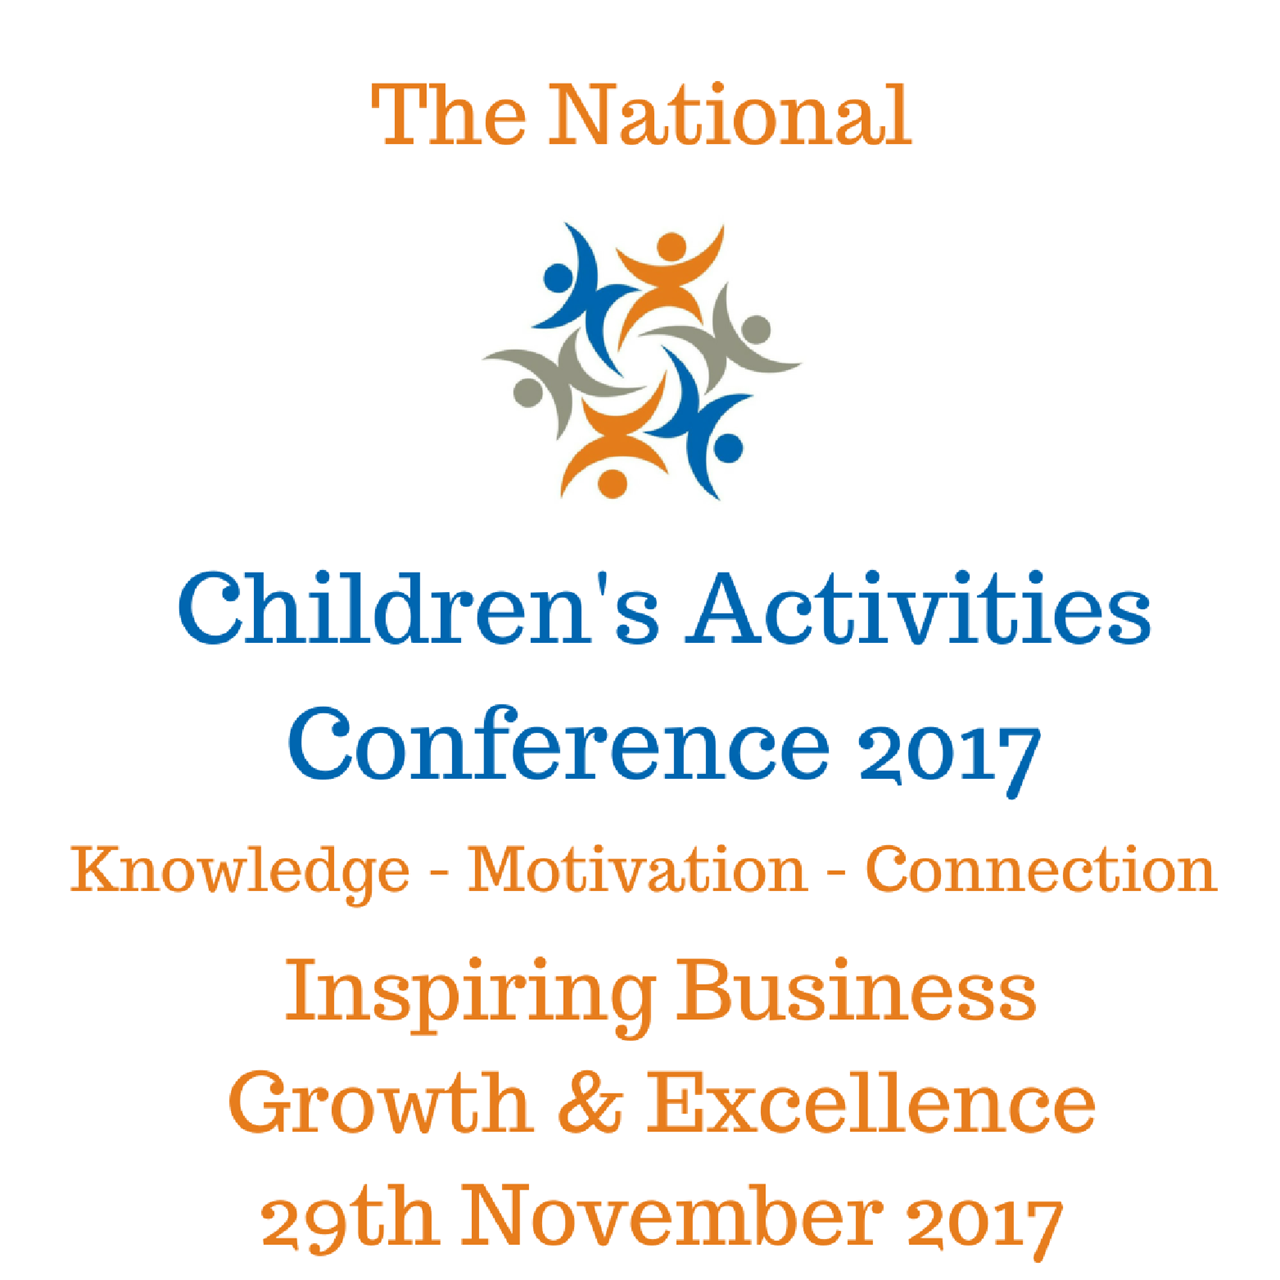 Children's Activities Conference 2017